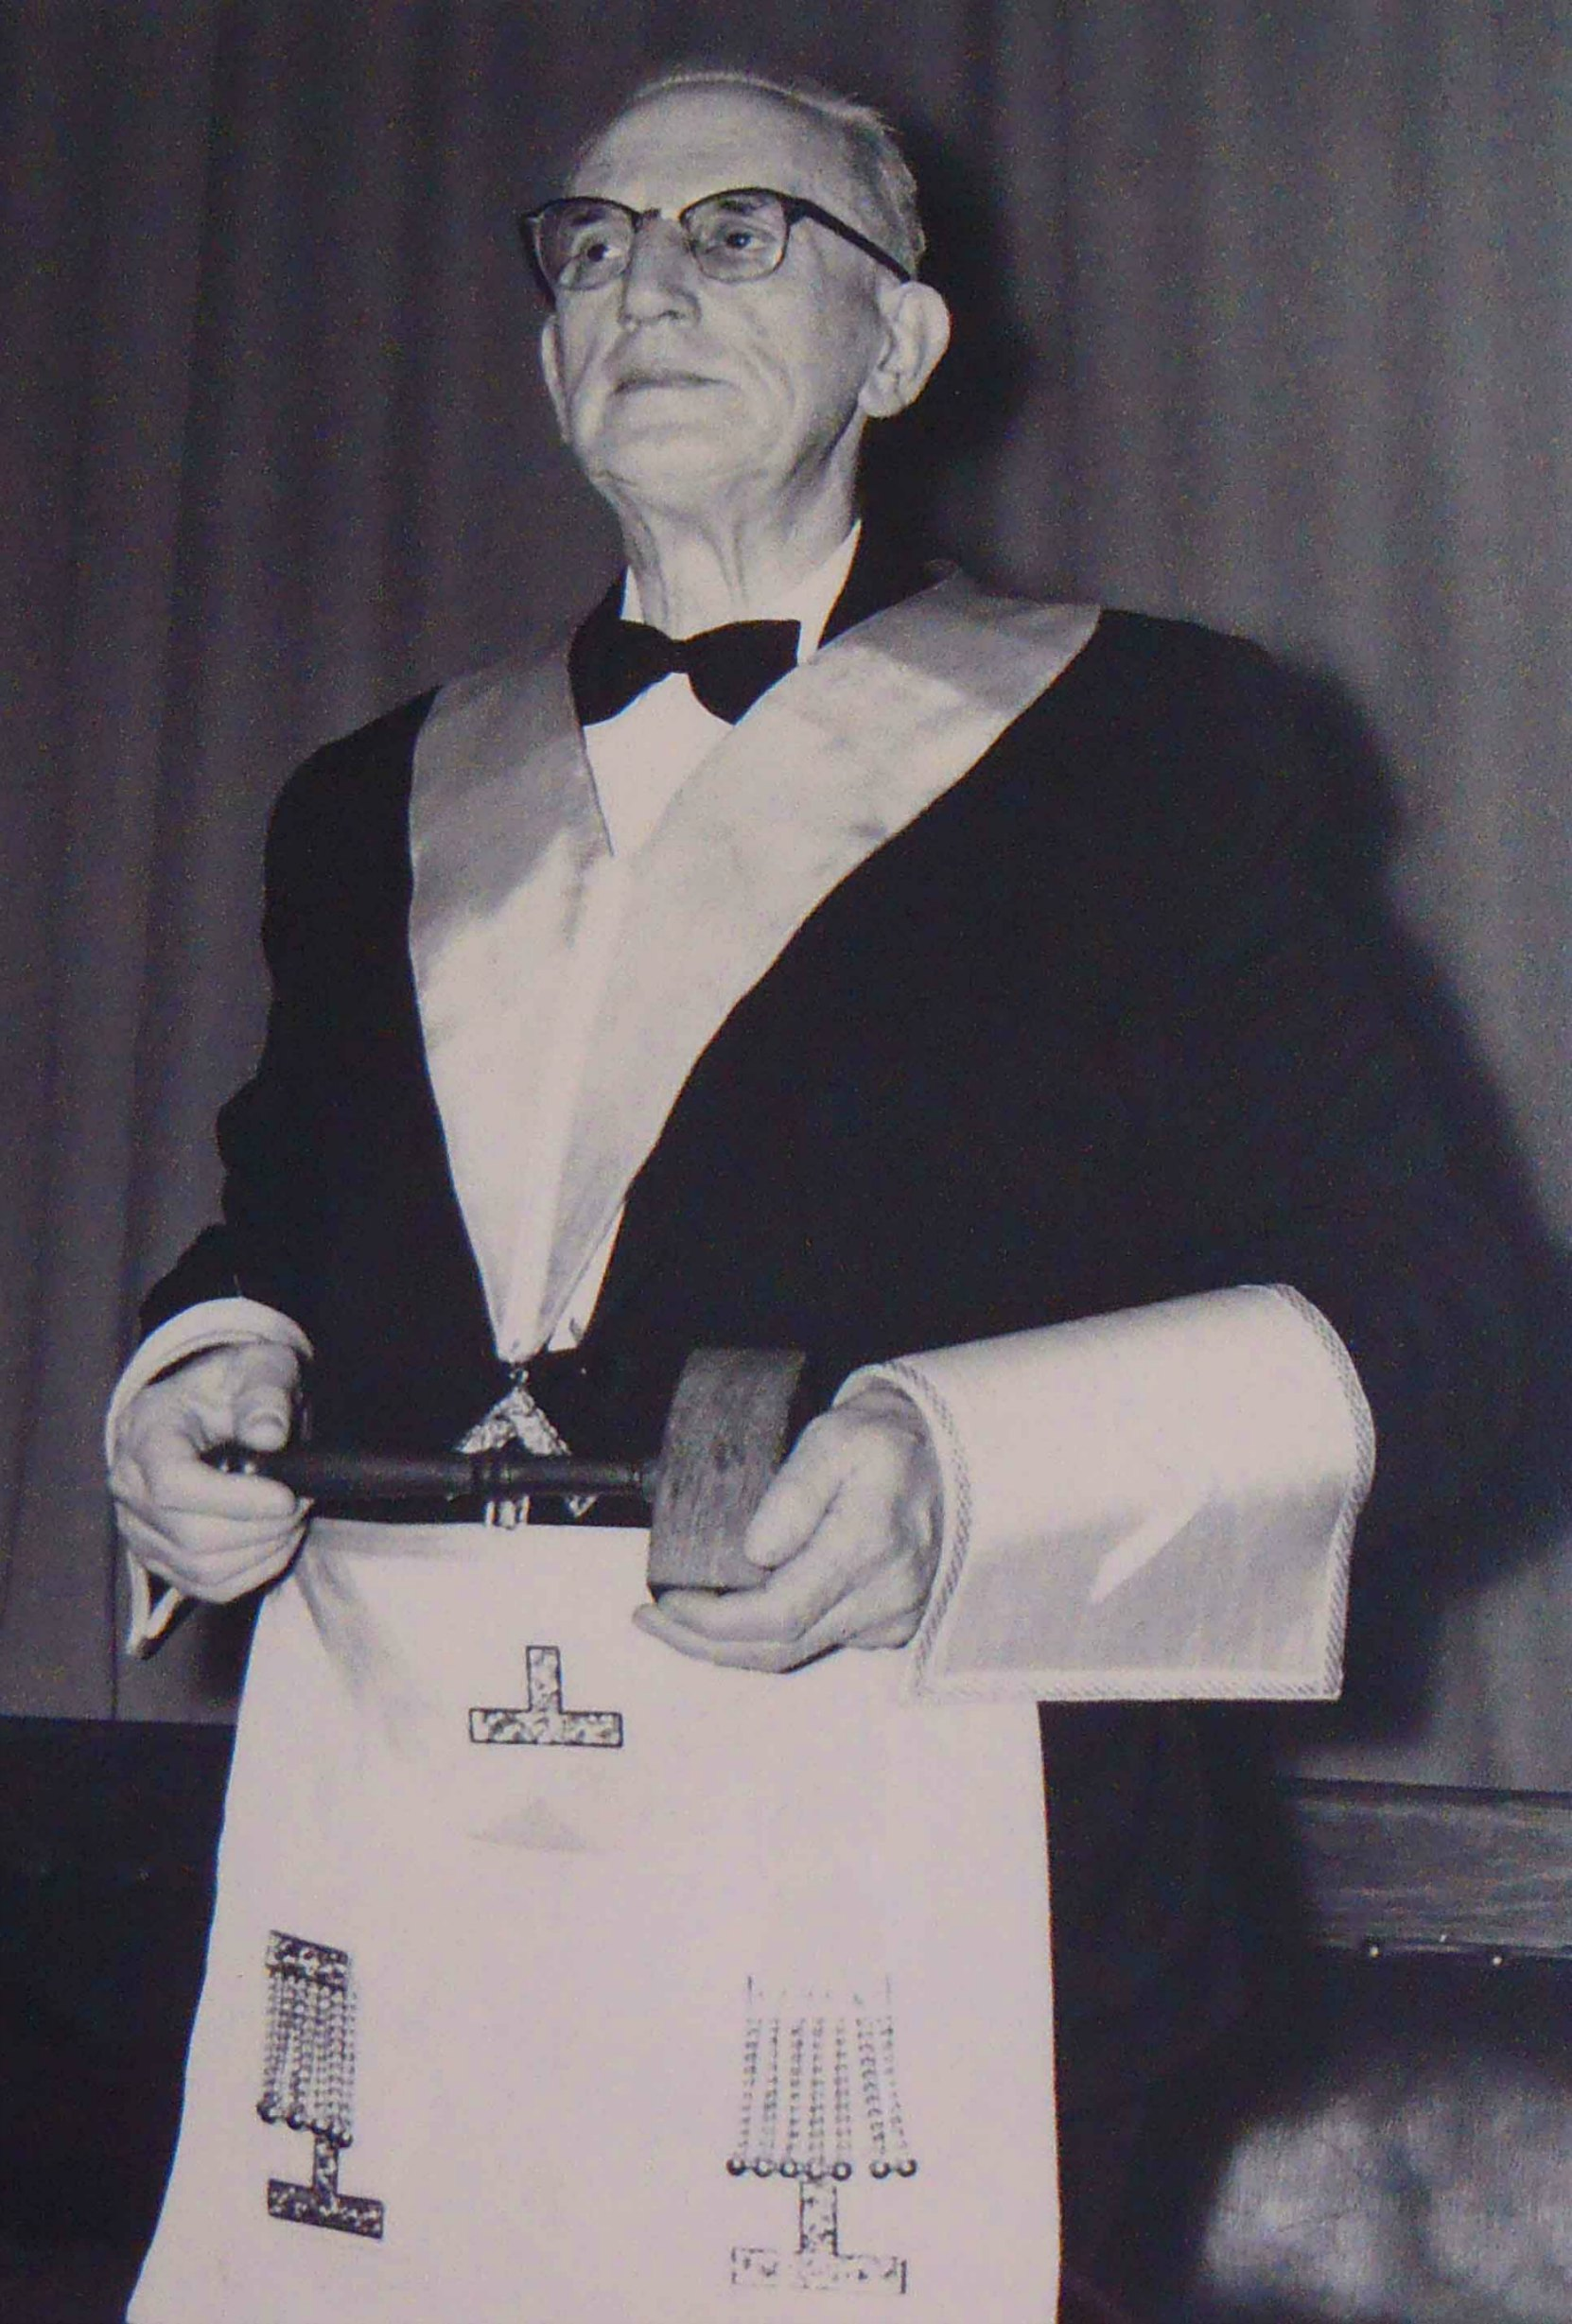 William Bruce Powel in Masonic regalia, circa 1958